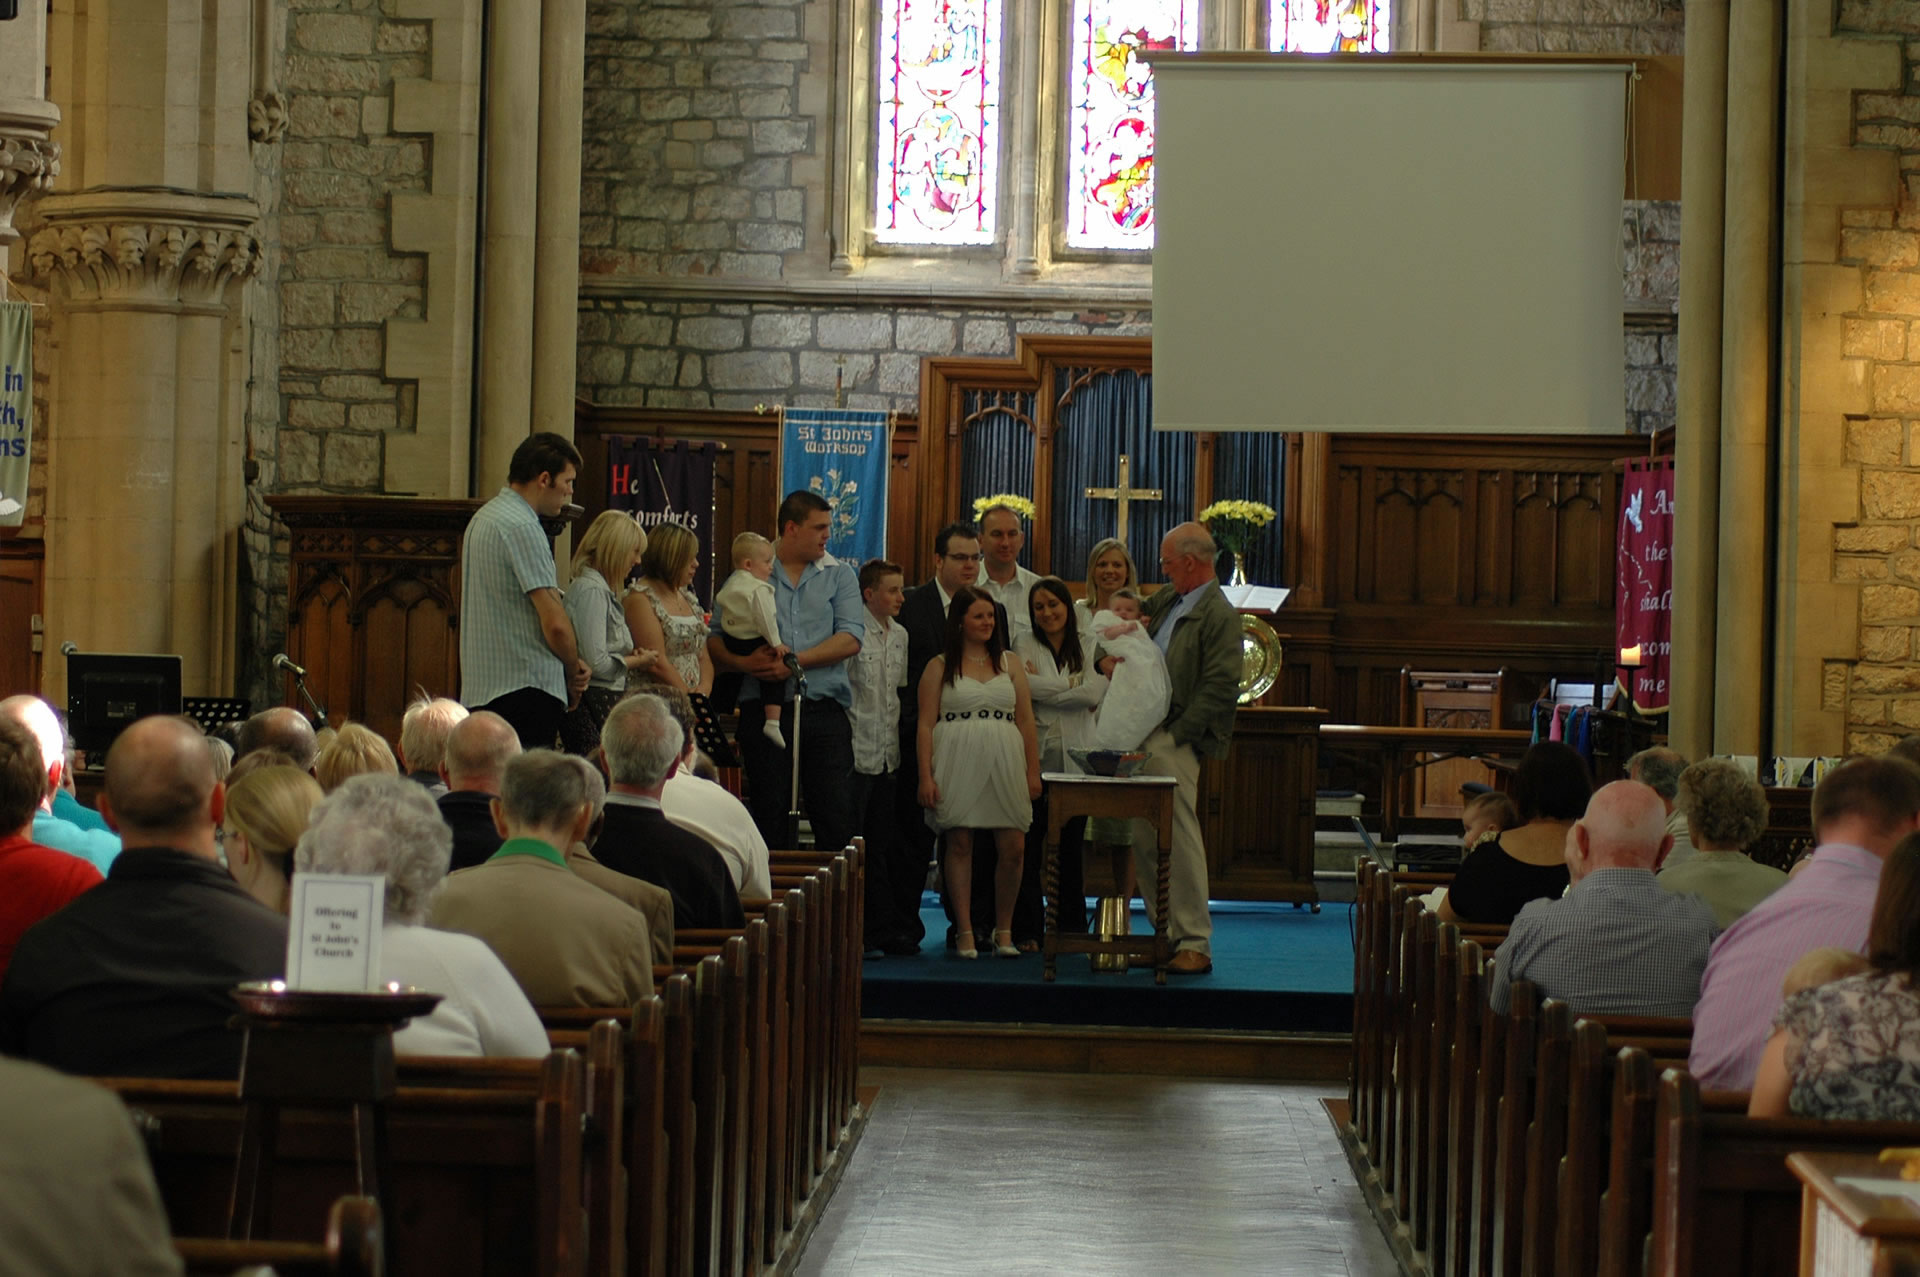 Baptism and Weddings at St Johns' Church, Worksop